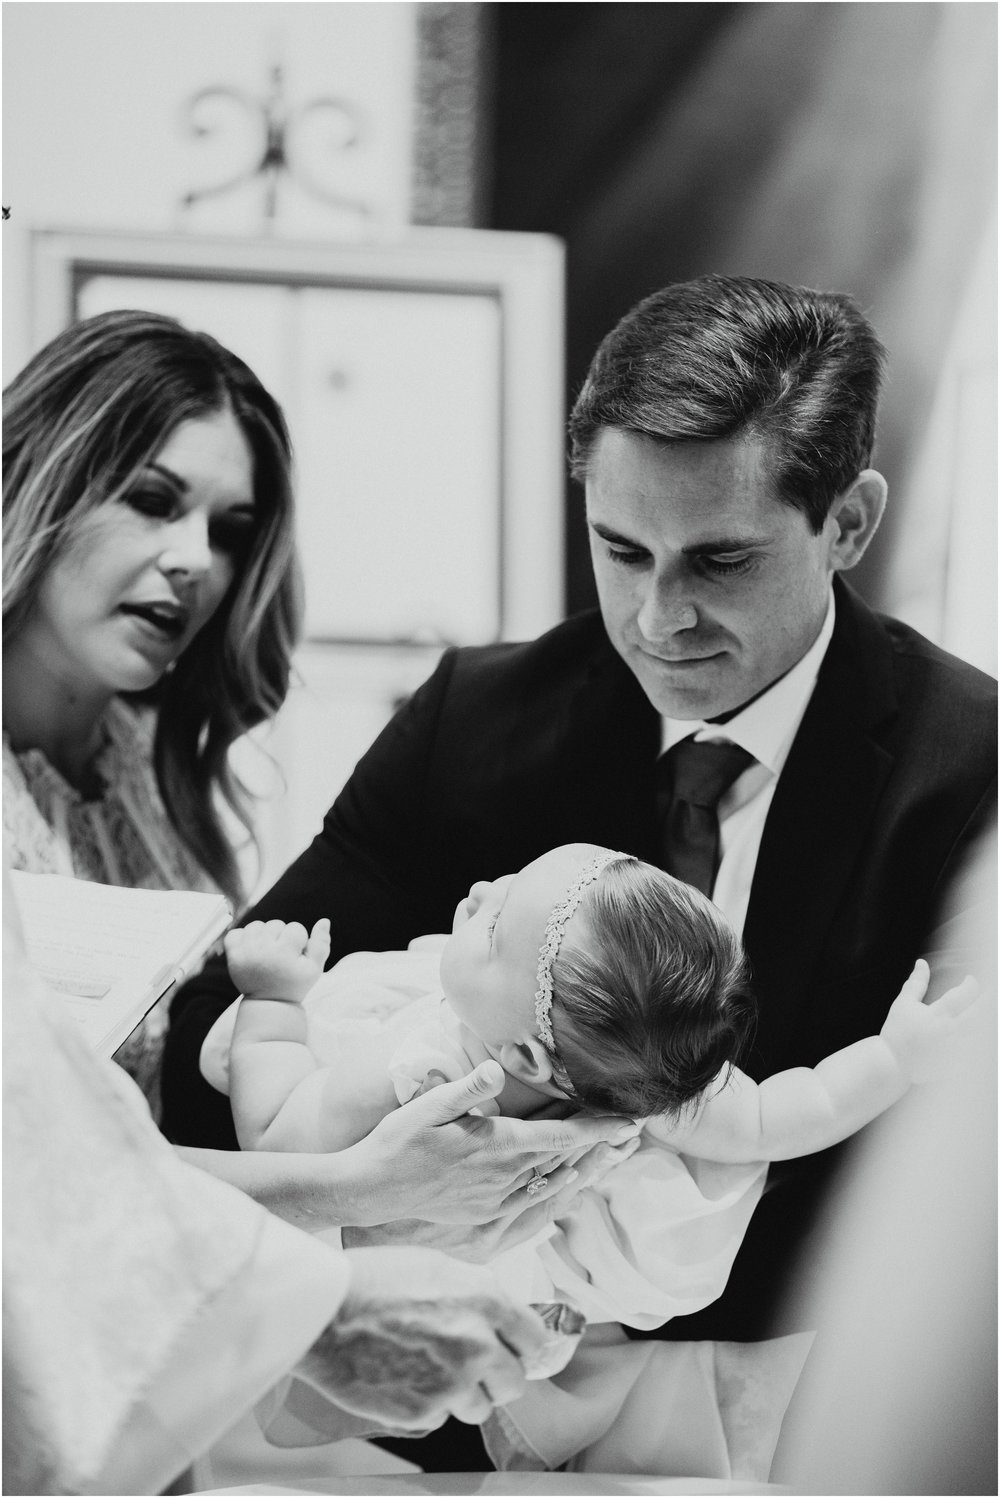 Mire-Blessing-Baptism-Family-2018-June-8552_quaint-and-whim-lifestyle-photographer-louisiana-.jpg